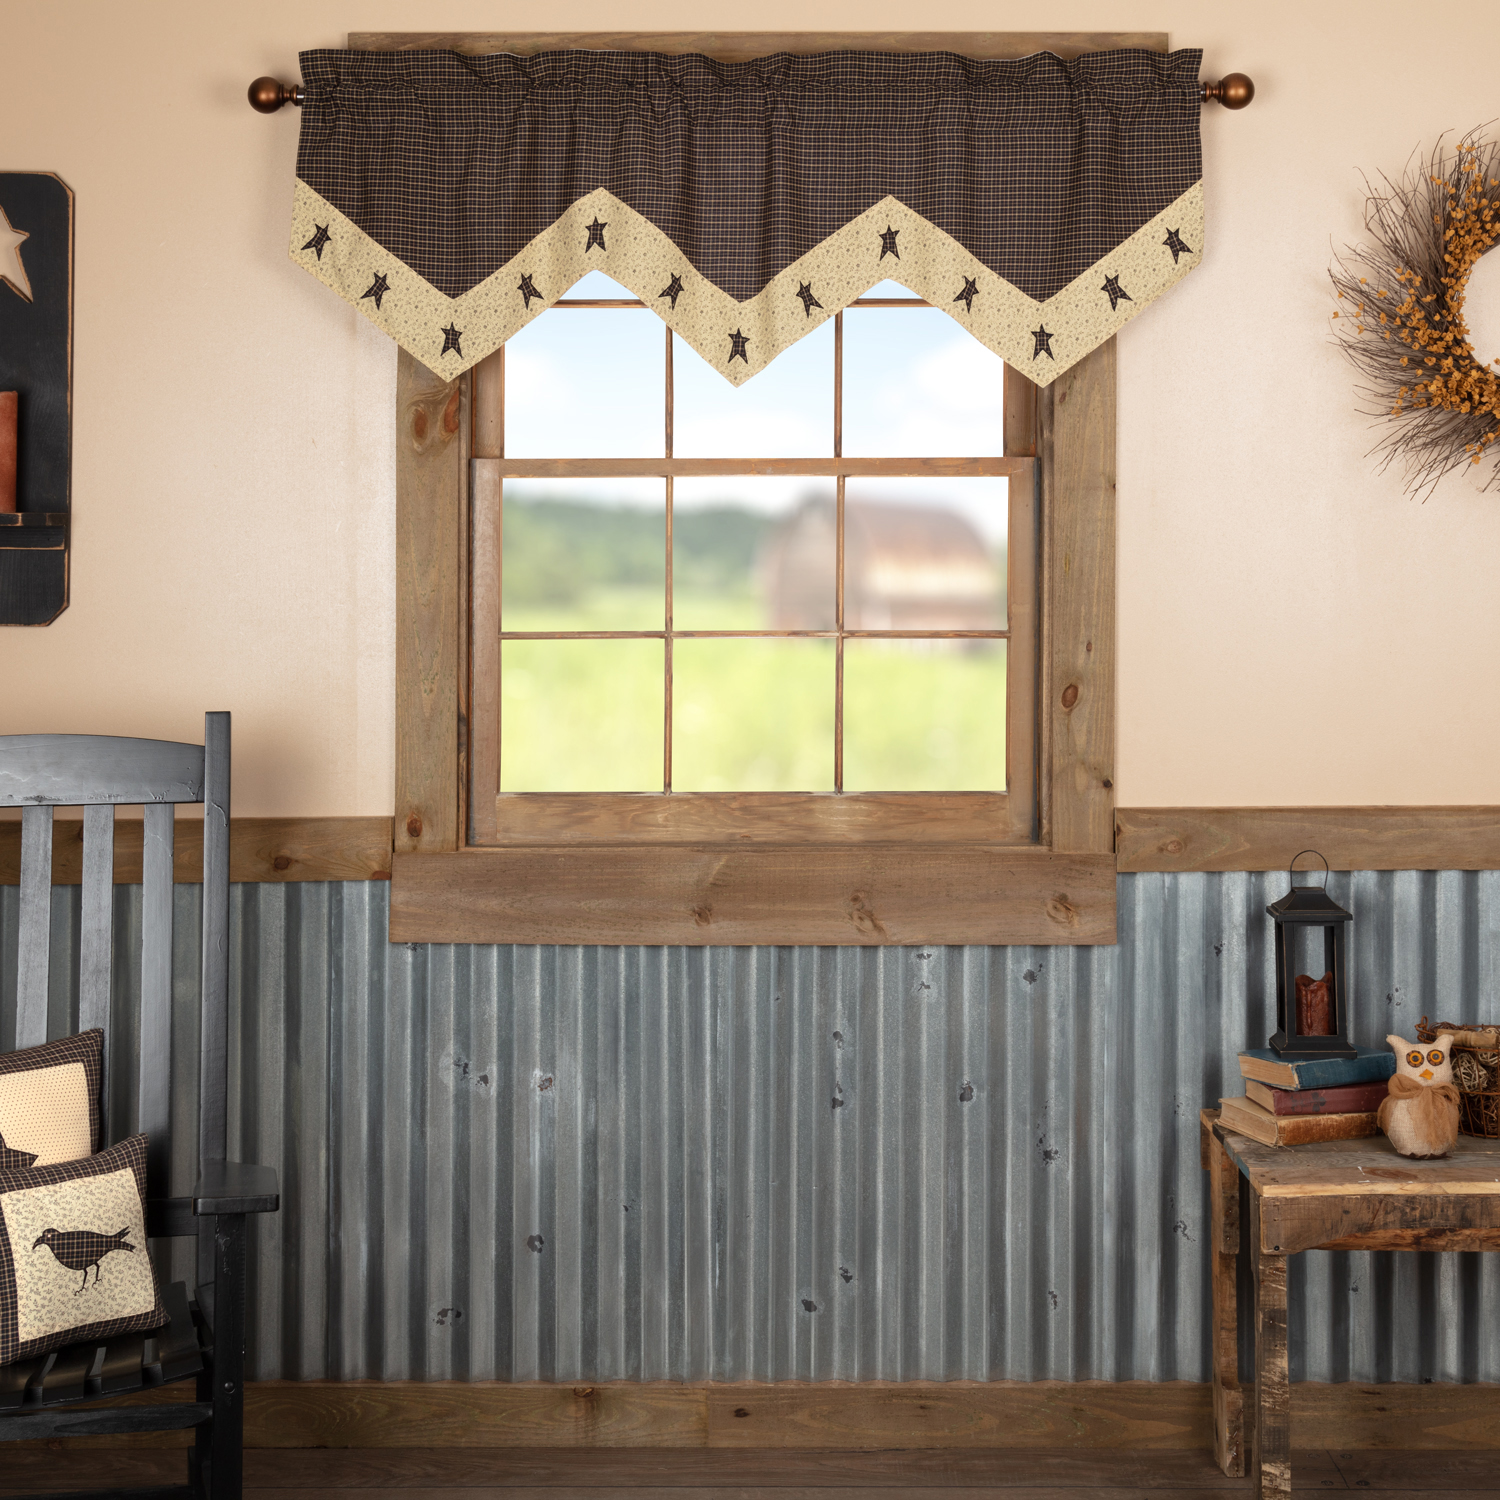 Kettle Grove Star Valance 20x60